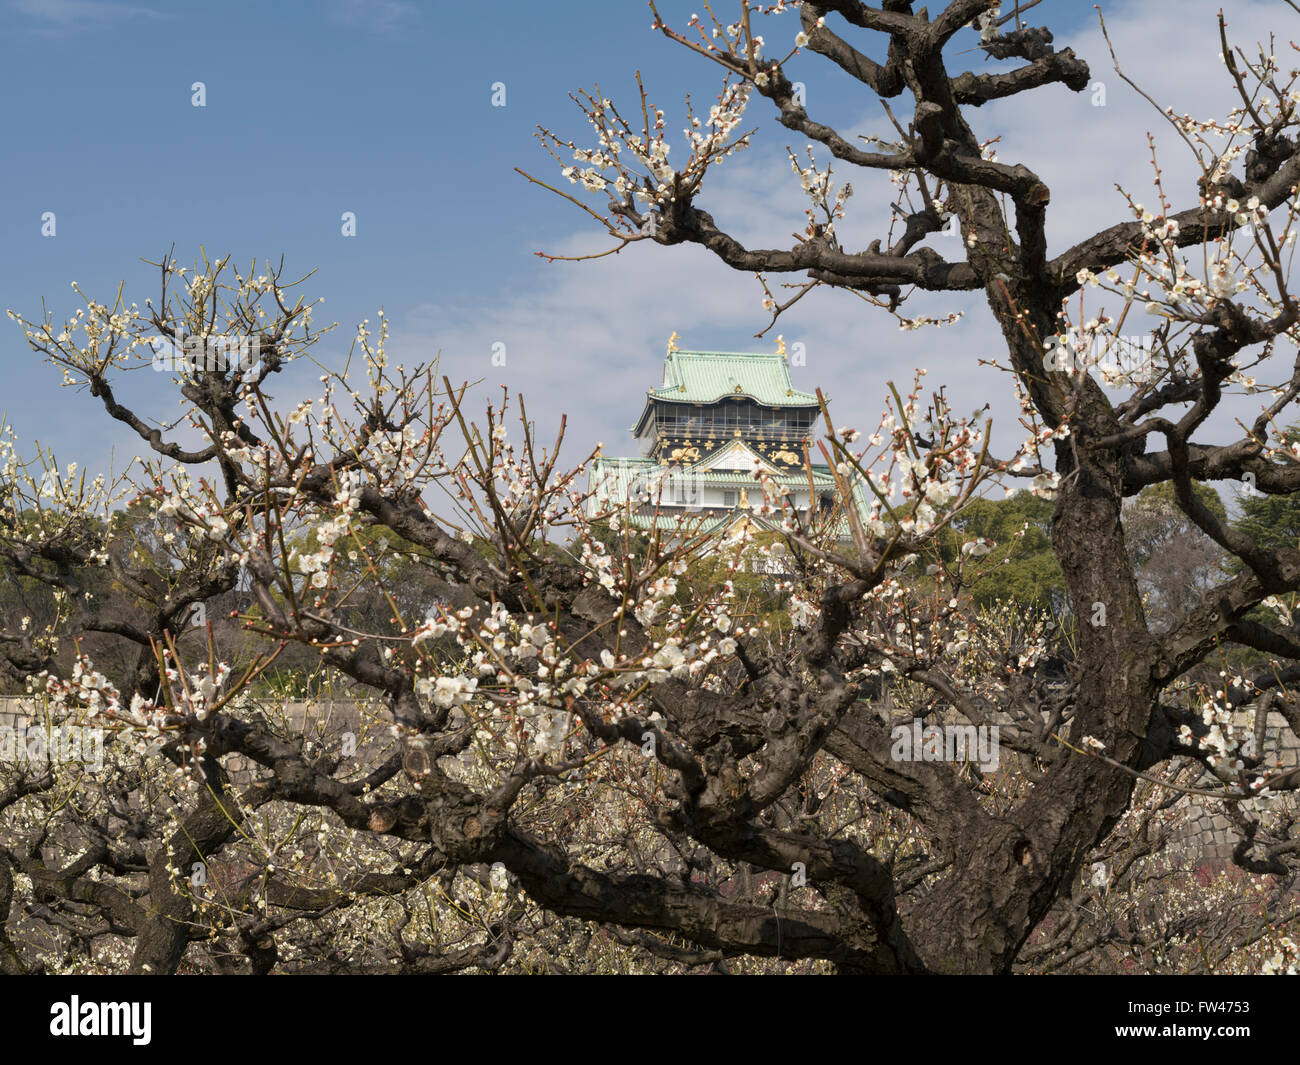 Plum blossom at Osaka Castle in early Spring (March) - Stock Image